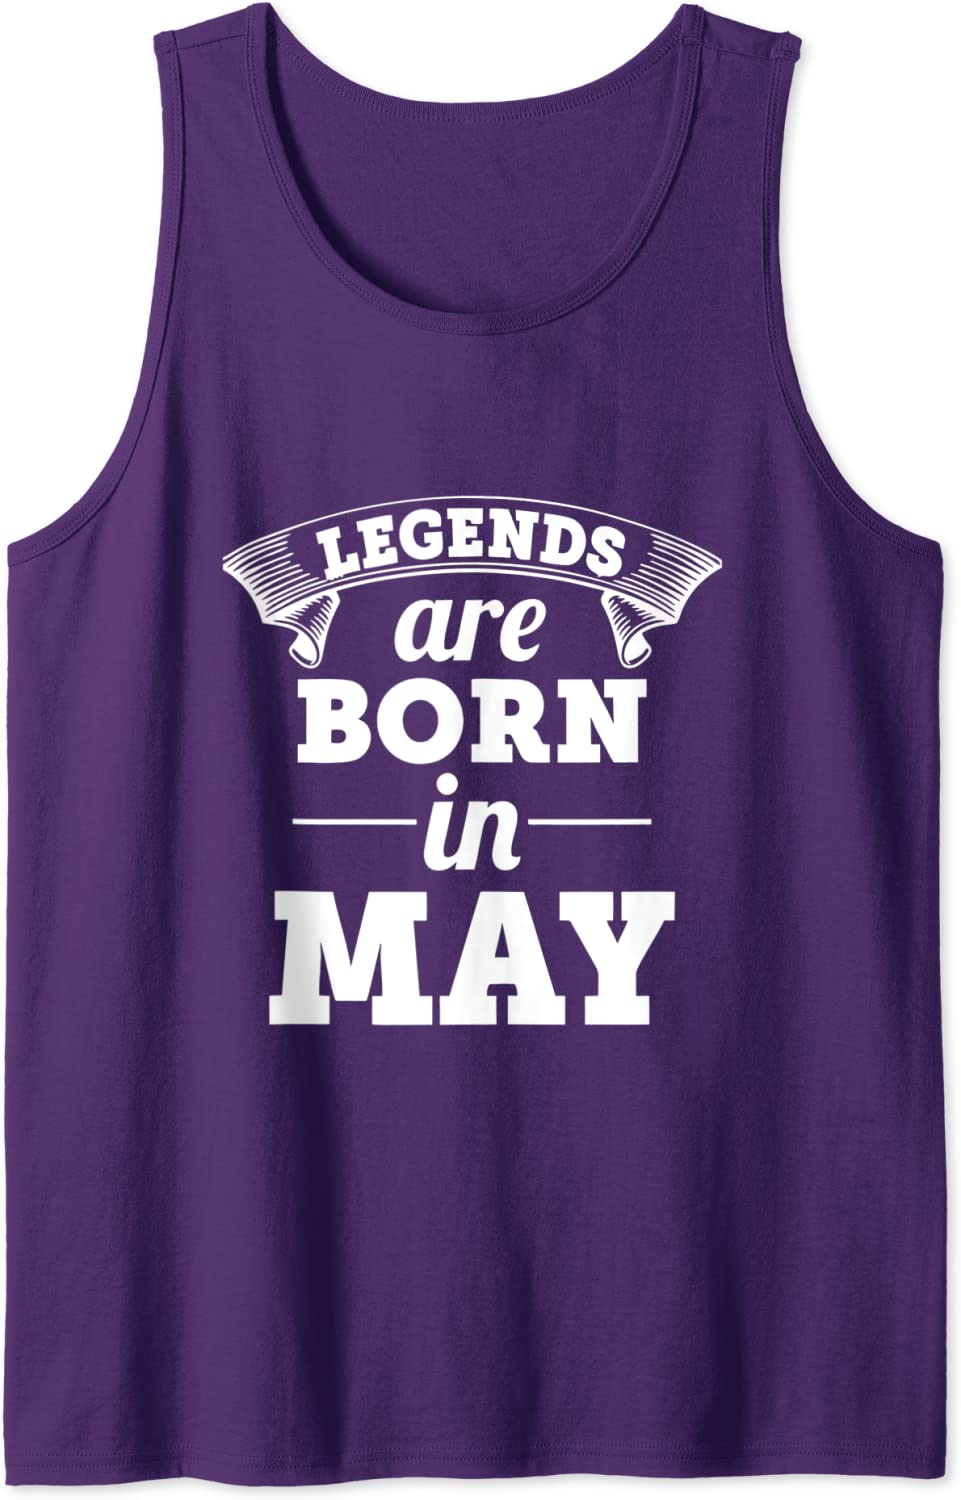 LEGENDS ARE BORN IN MAY Camiseta sin Mangas